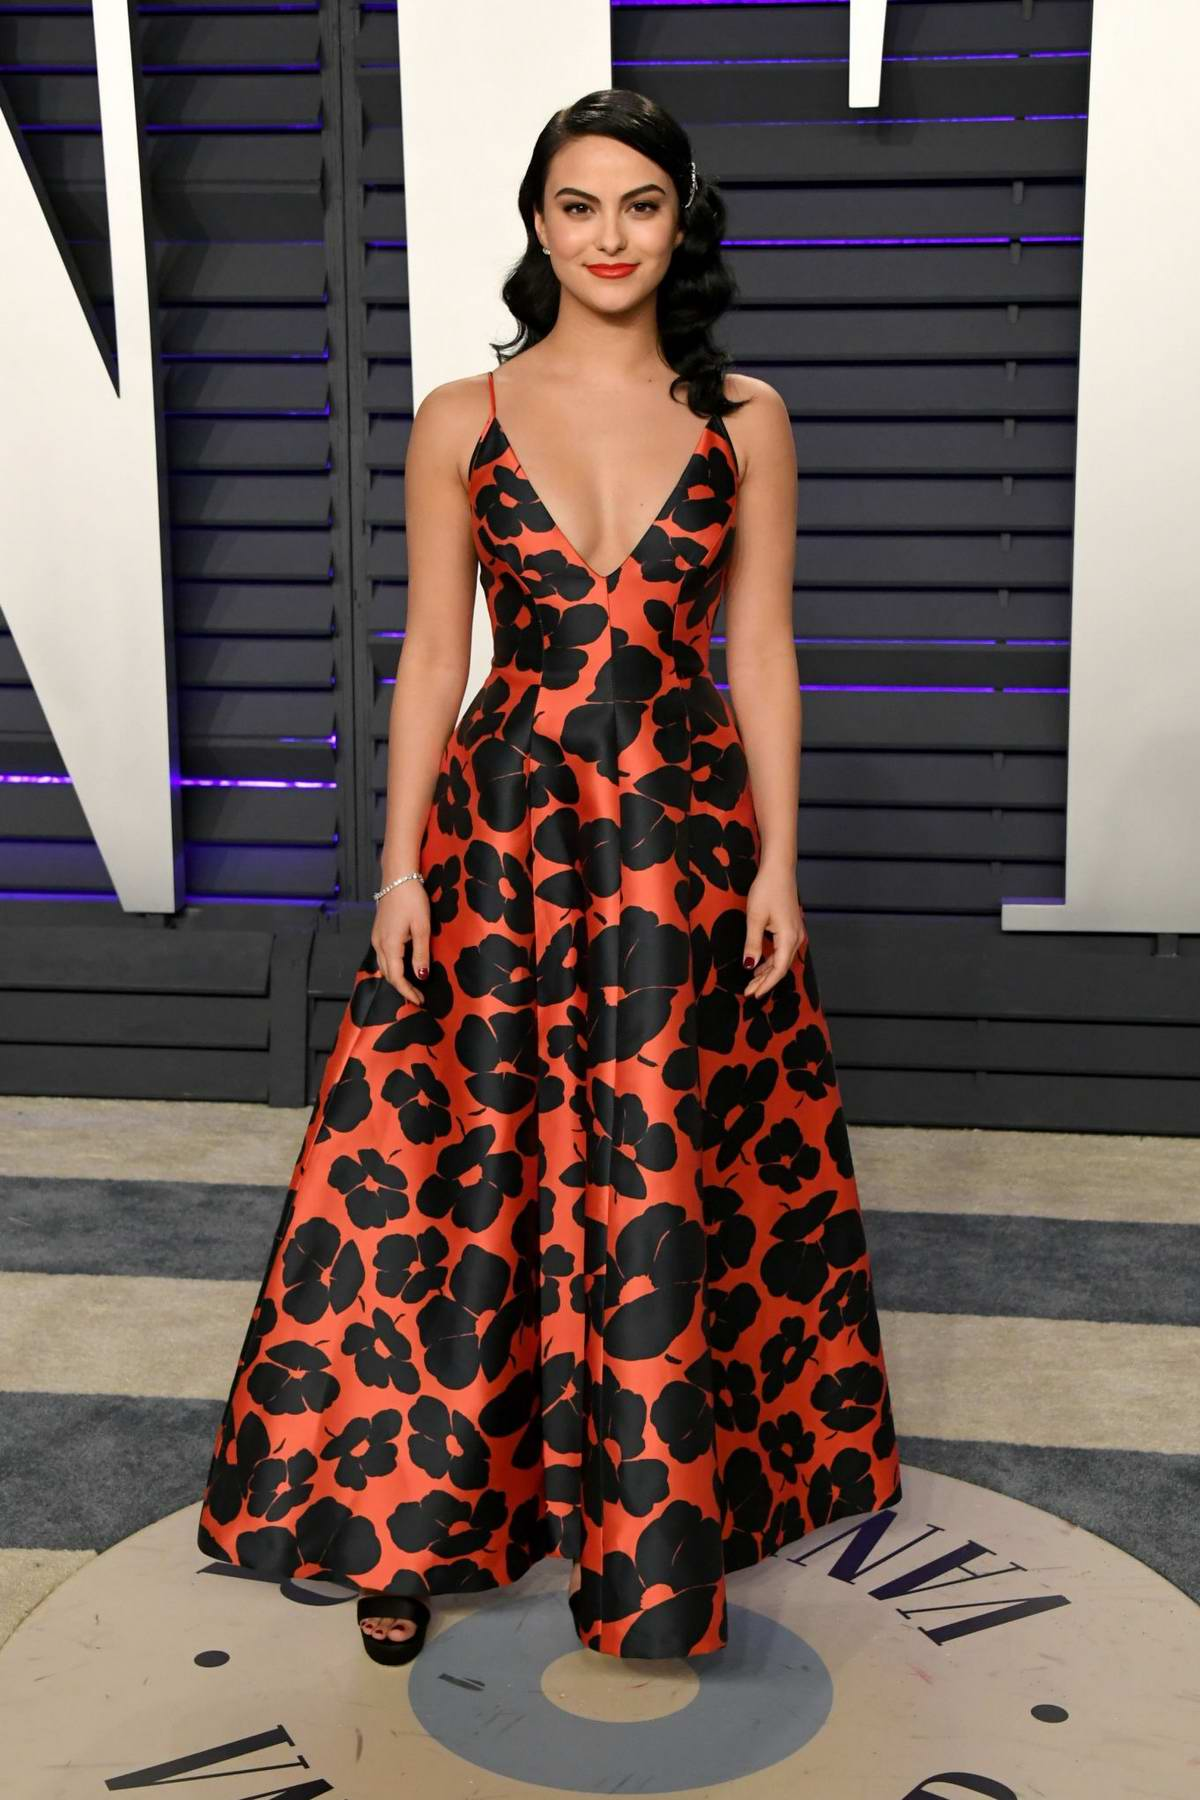 Camila Mendes attends the Vanity Fair Oscar Party at Wallis Annenberg Center for the Performing Arts in Beverly Hills, California